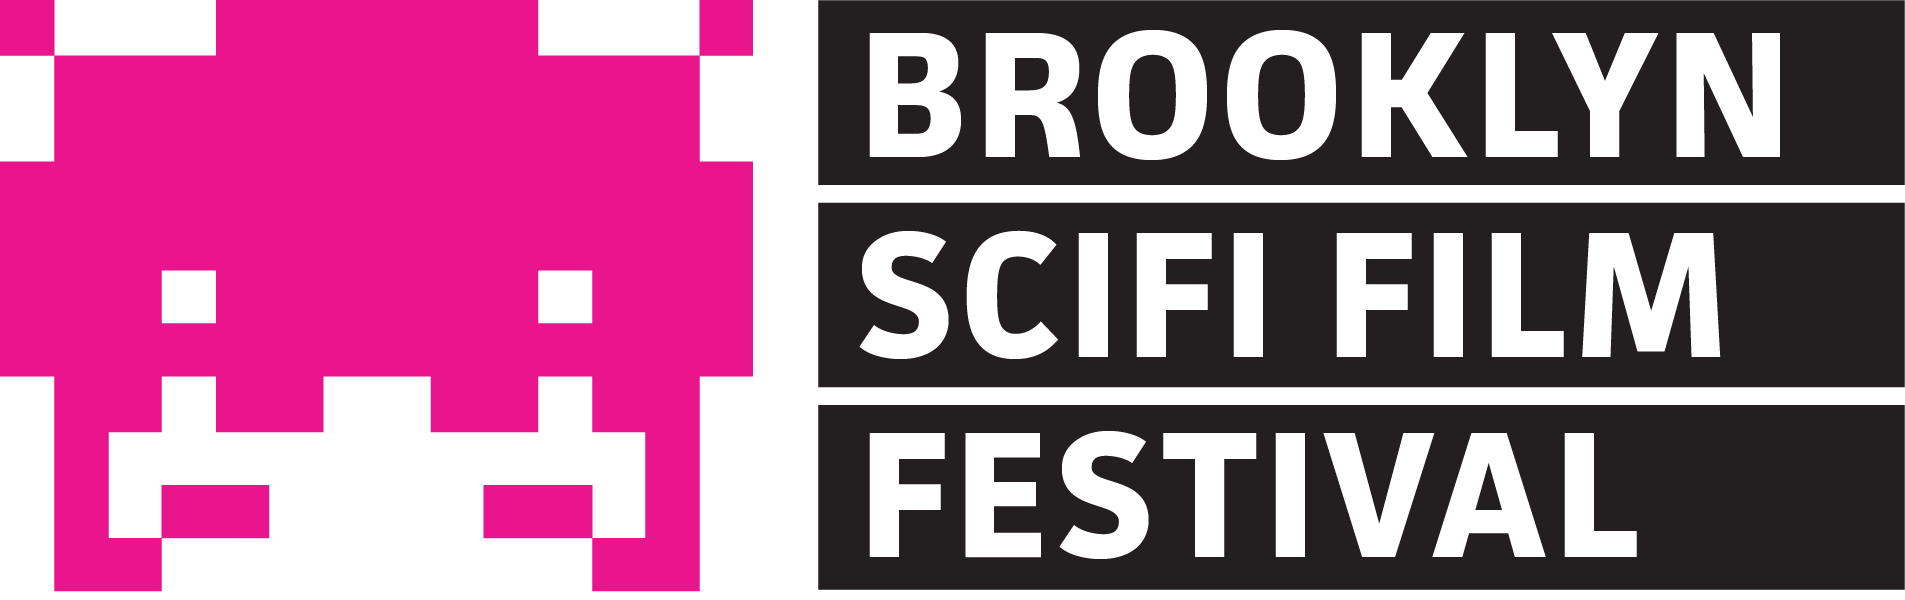 Brooklyn scifi film fest